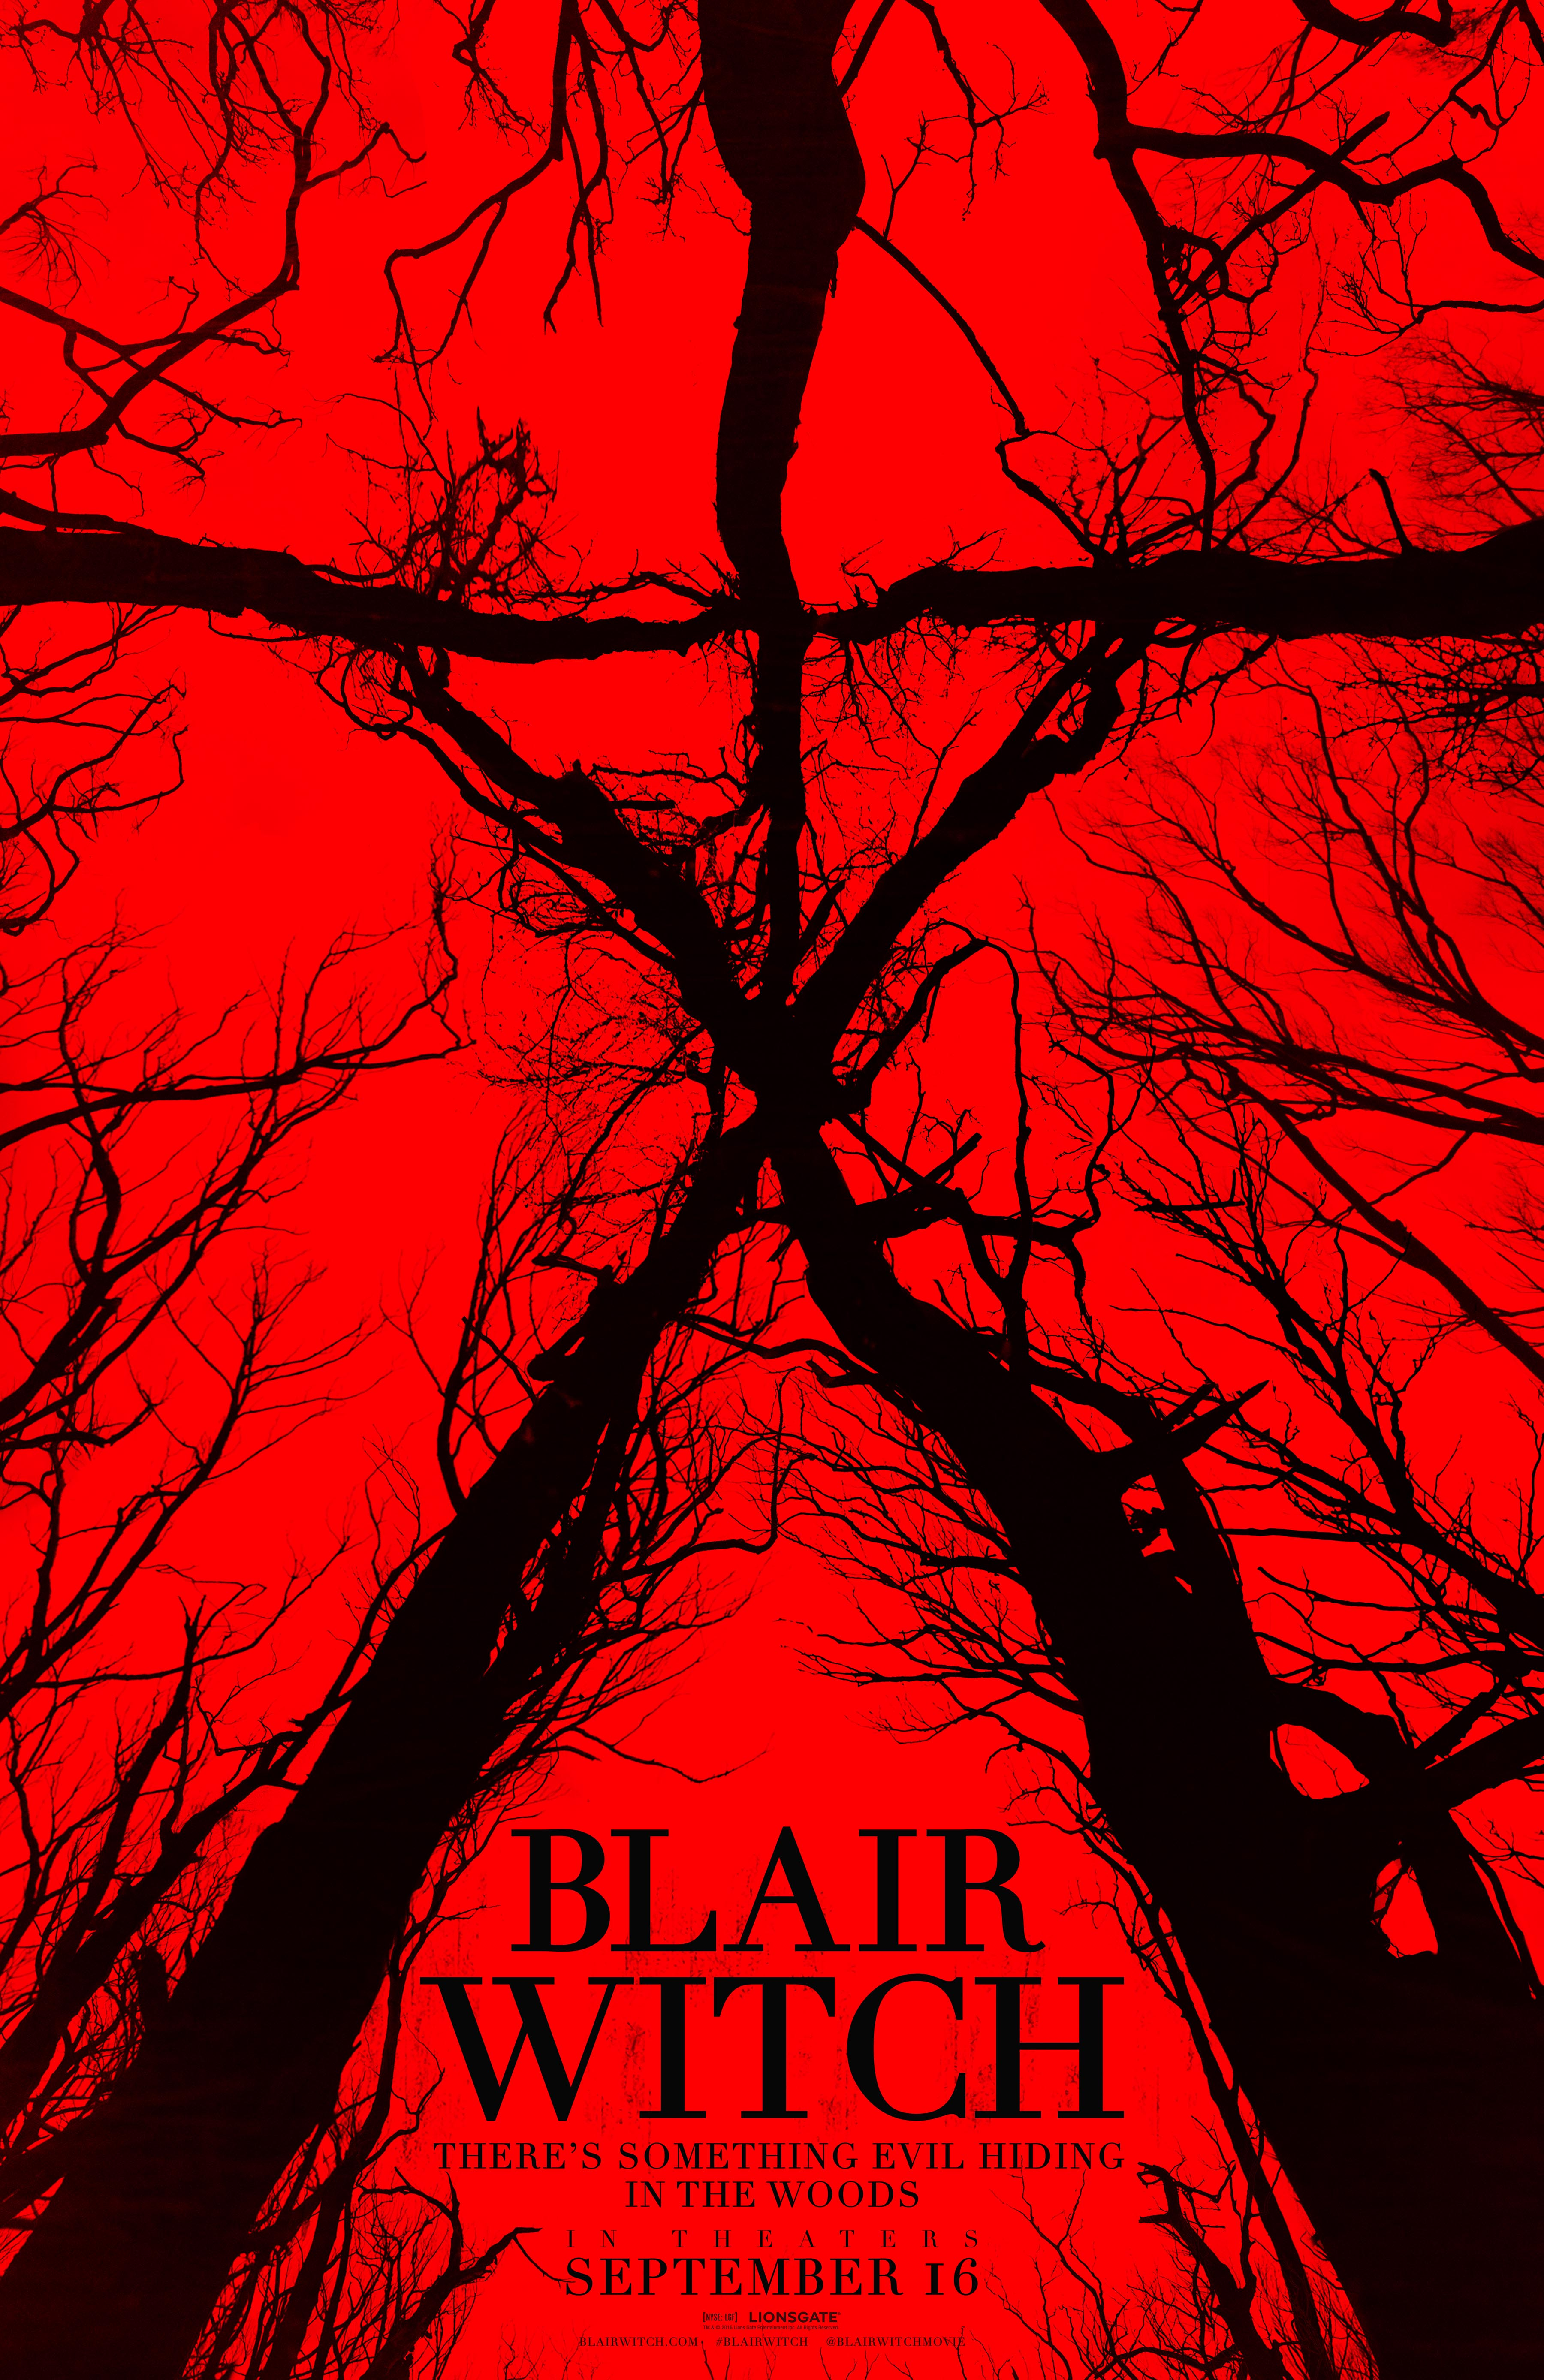 Official Blair Witch Poster